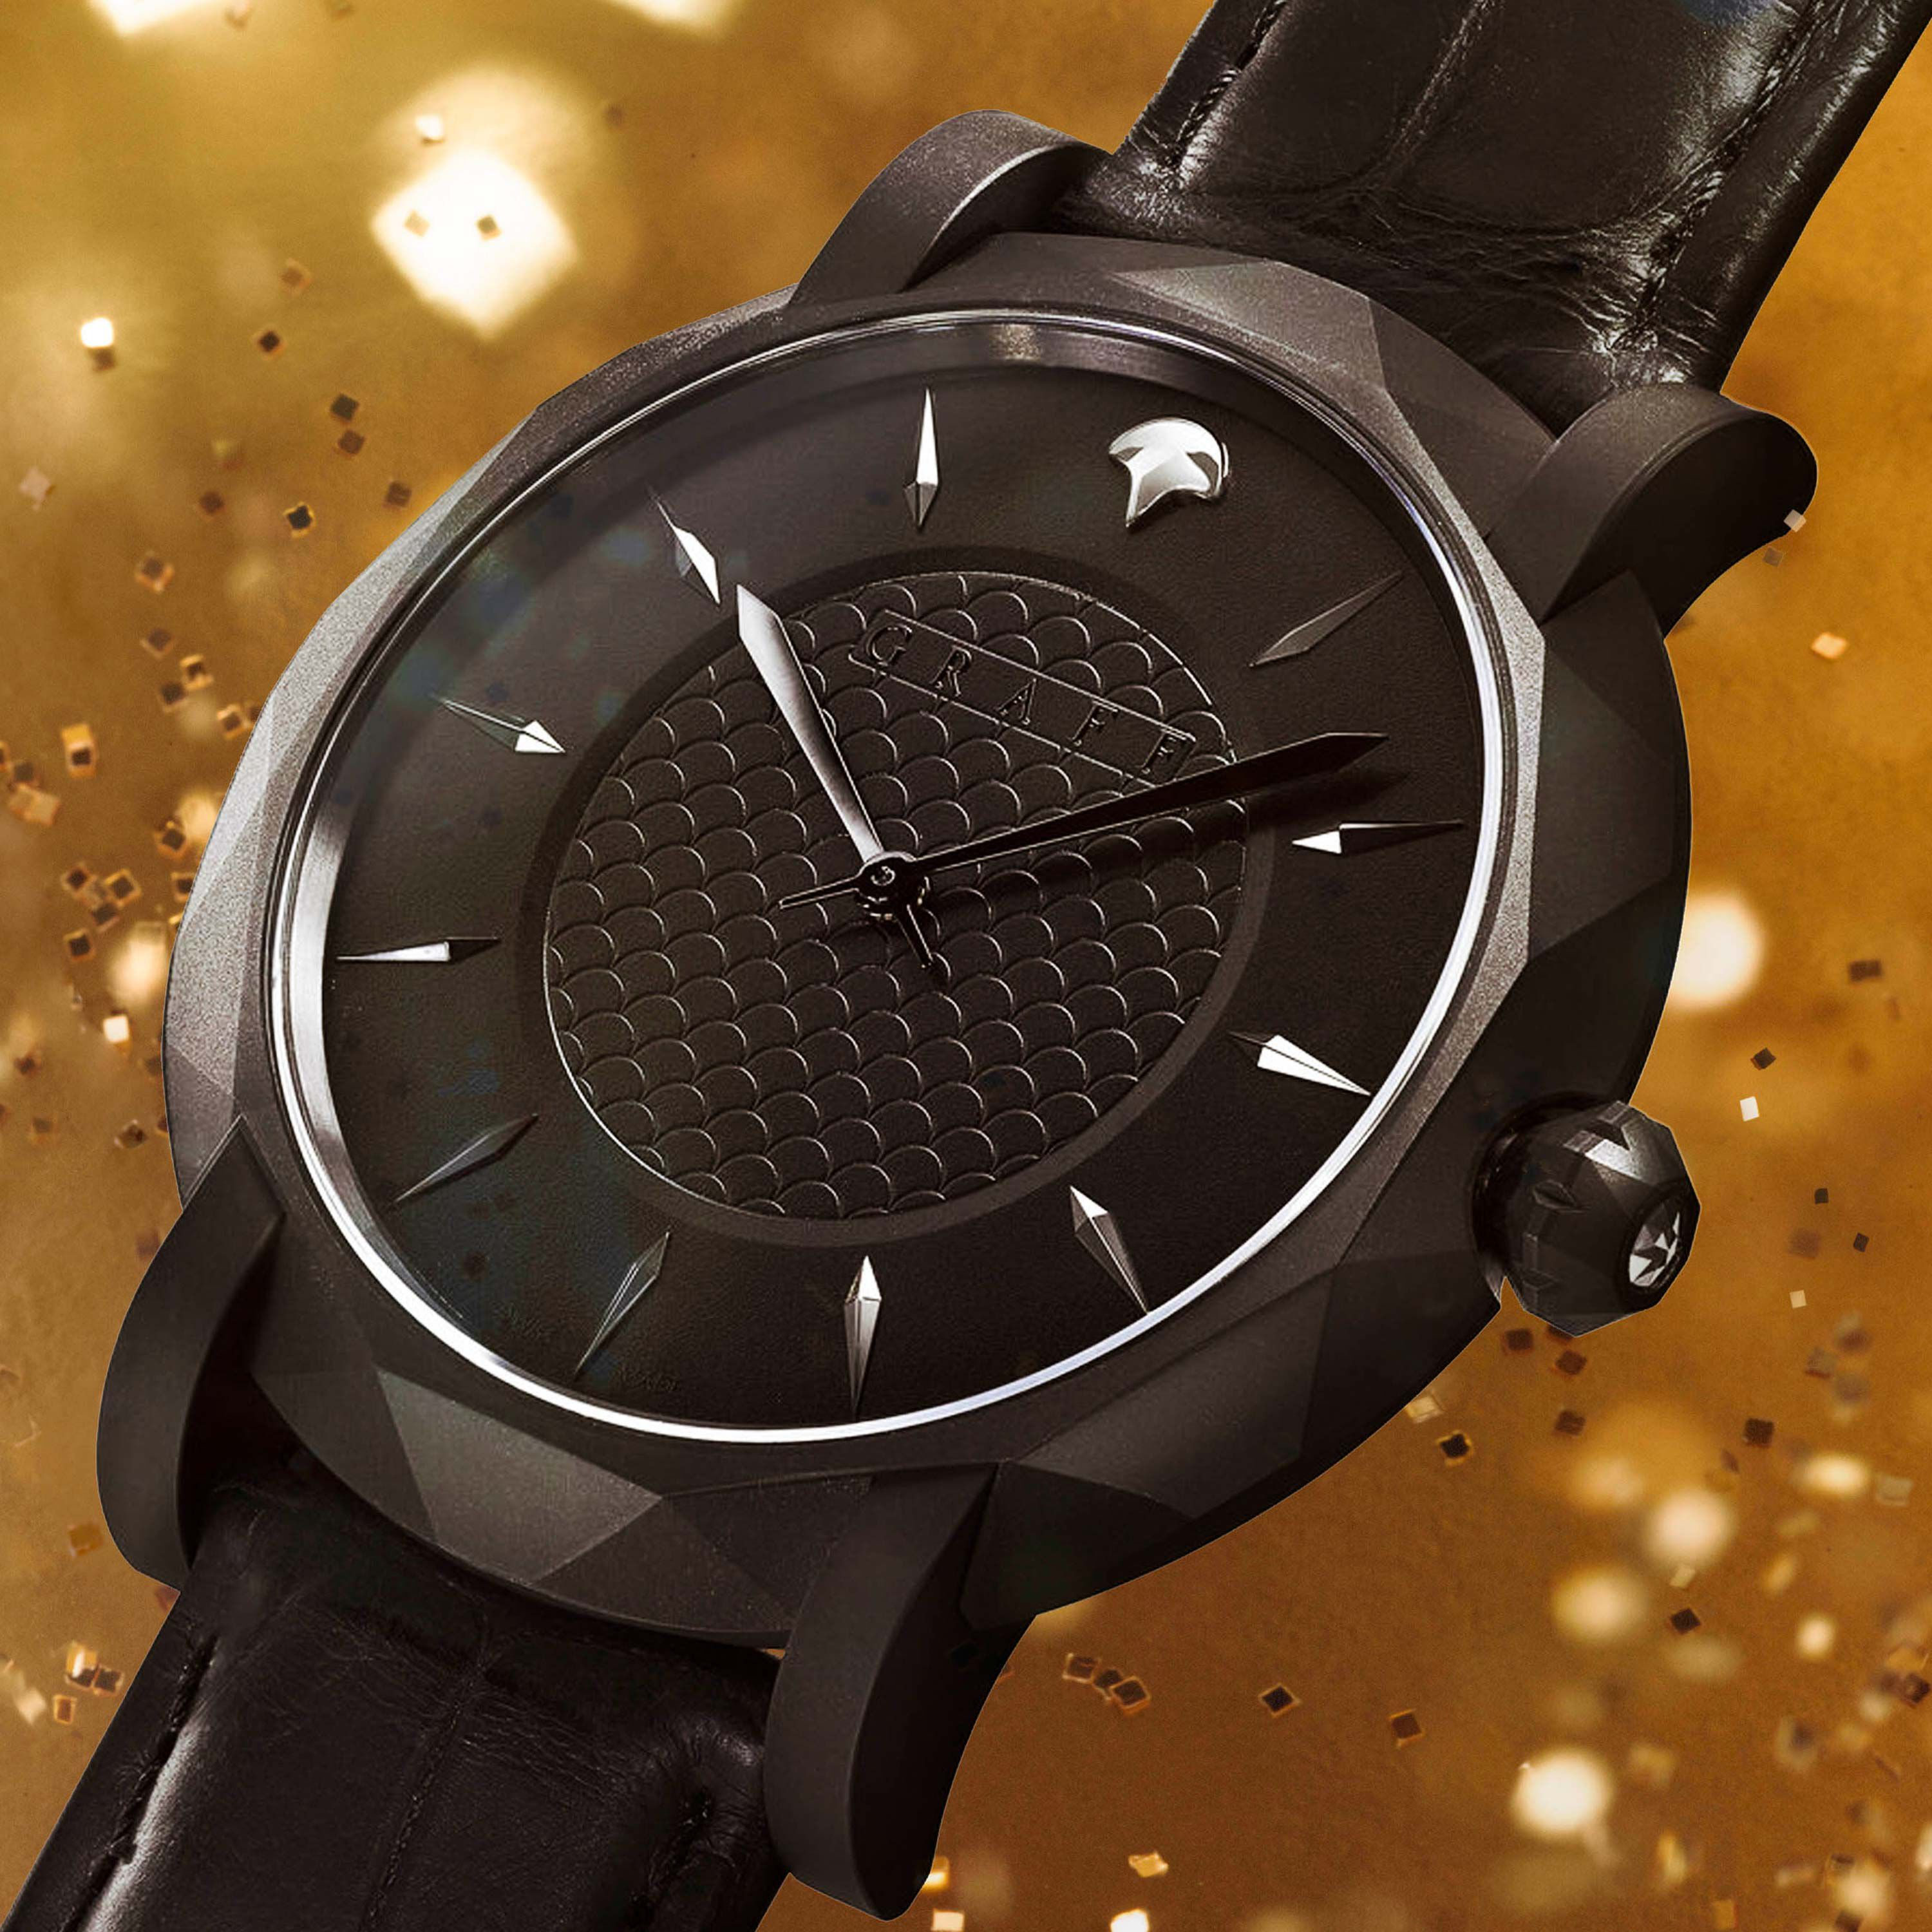 A Graff Eclipse men's watch on a sparkly gold background